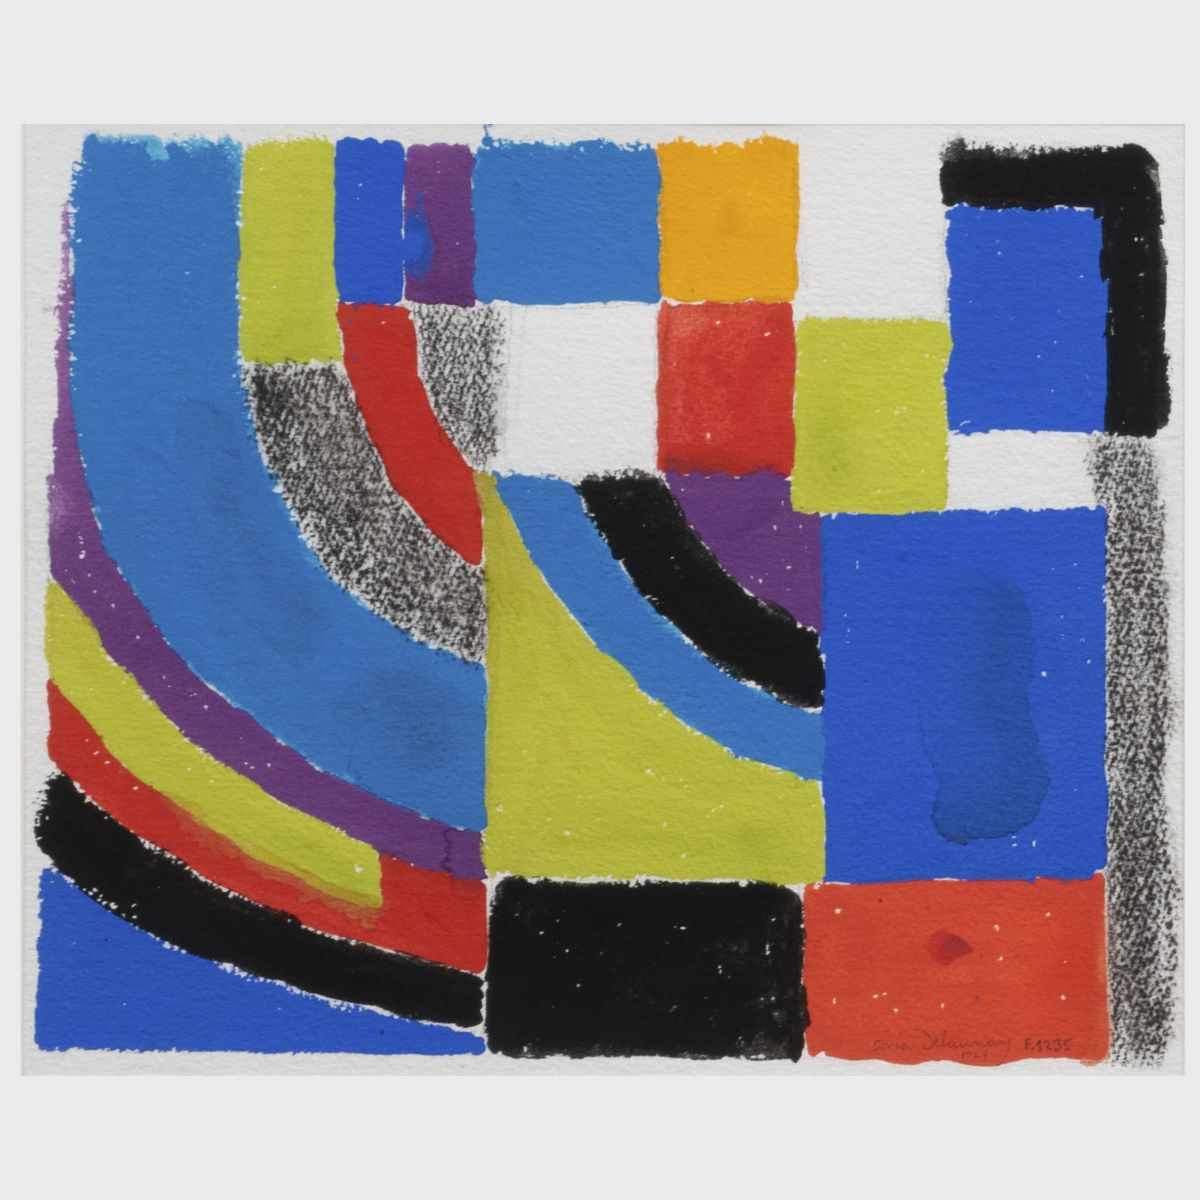 Lot 421, Sonia Delaunay, Composition, Gouache and charcoal on heavy paper, 1967